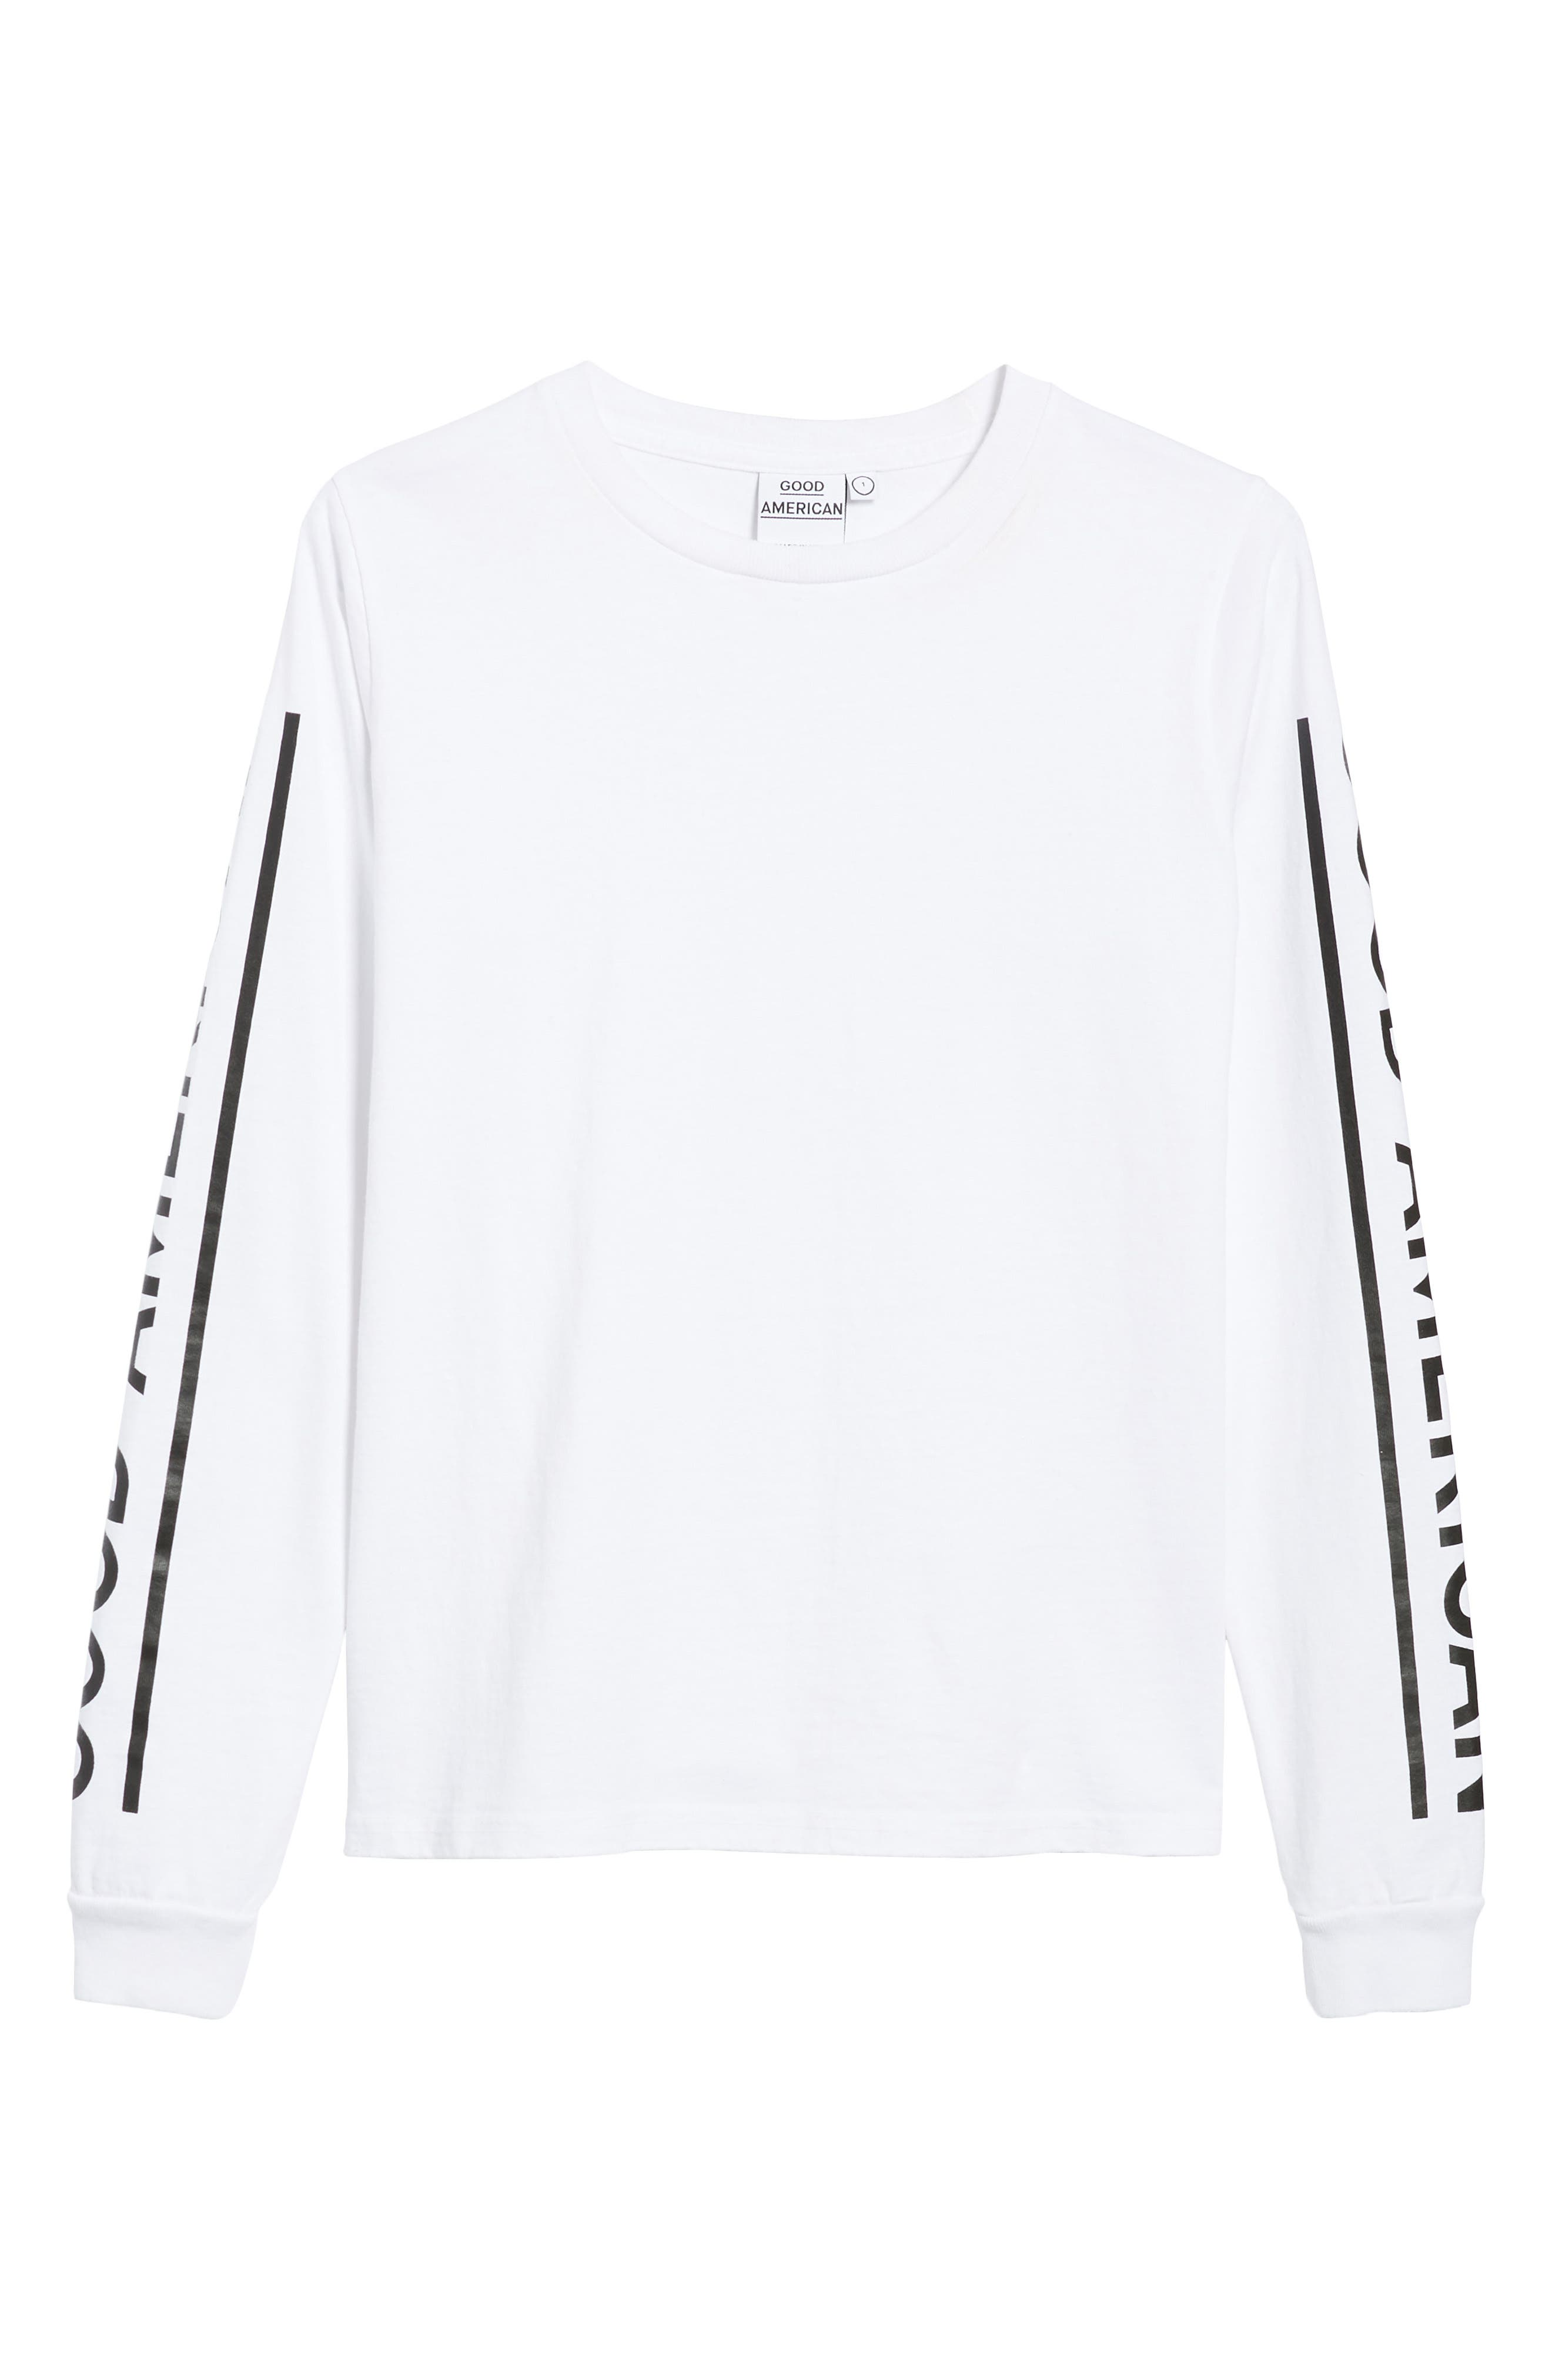 Goodies Long Sleeve Graphic Tee,                             Alternate thumbnail 6, color,